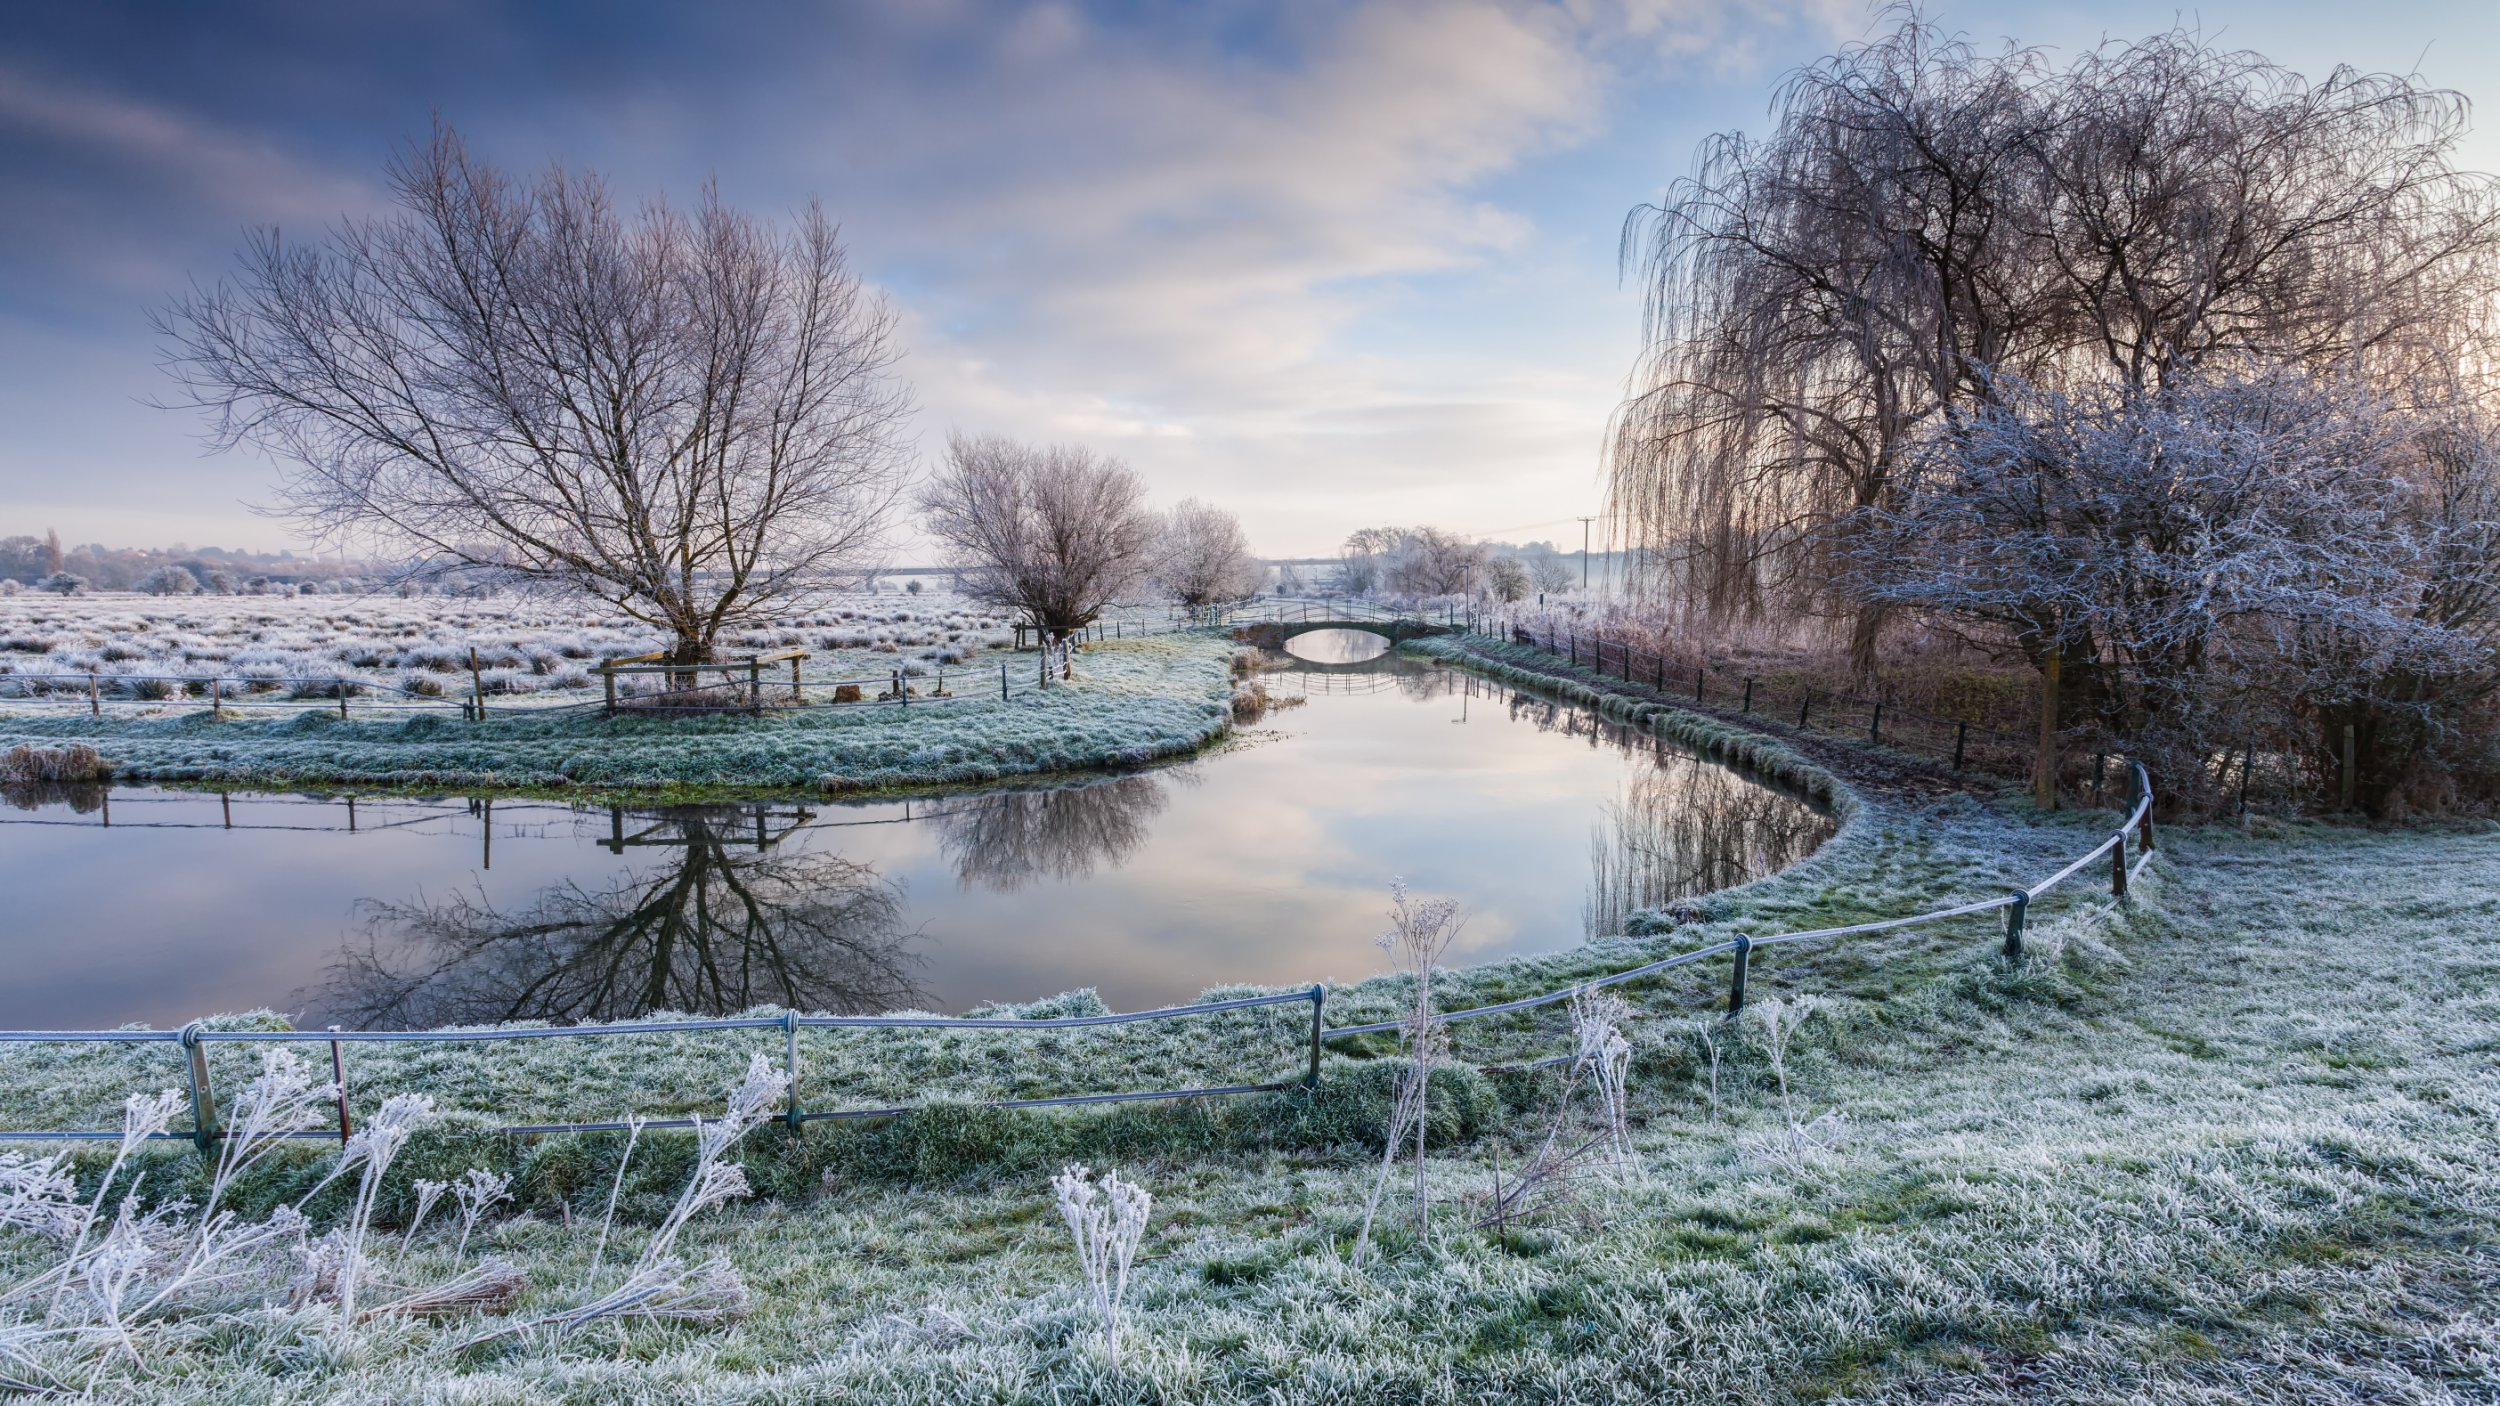 Hertford Marshes Hertford, Hertfordshire, UK. December 31,2014. Image shows a natural scene of an english river in the morning mist. The dawn sky is blue with whispy clouds, reflections of the trees can be seen in the river. Frost is scattered on the ground.